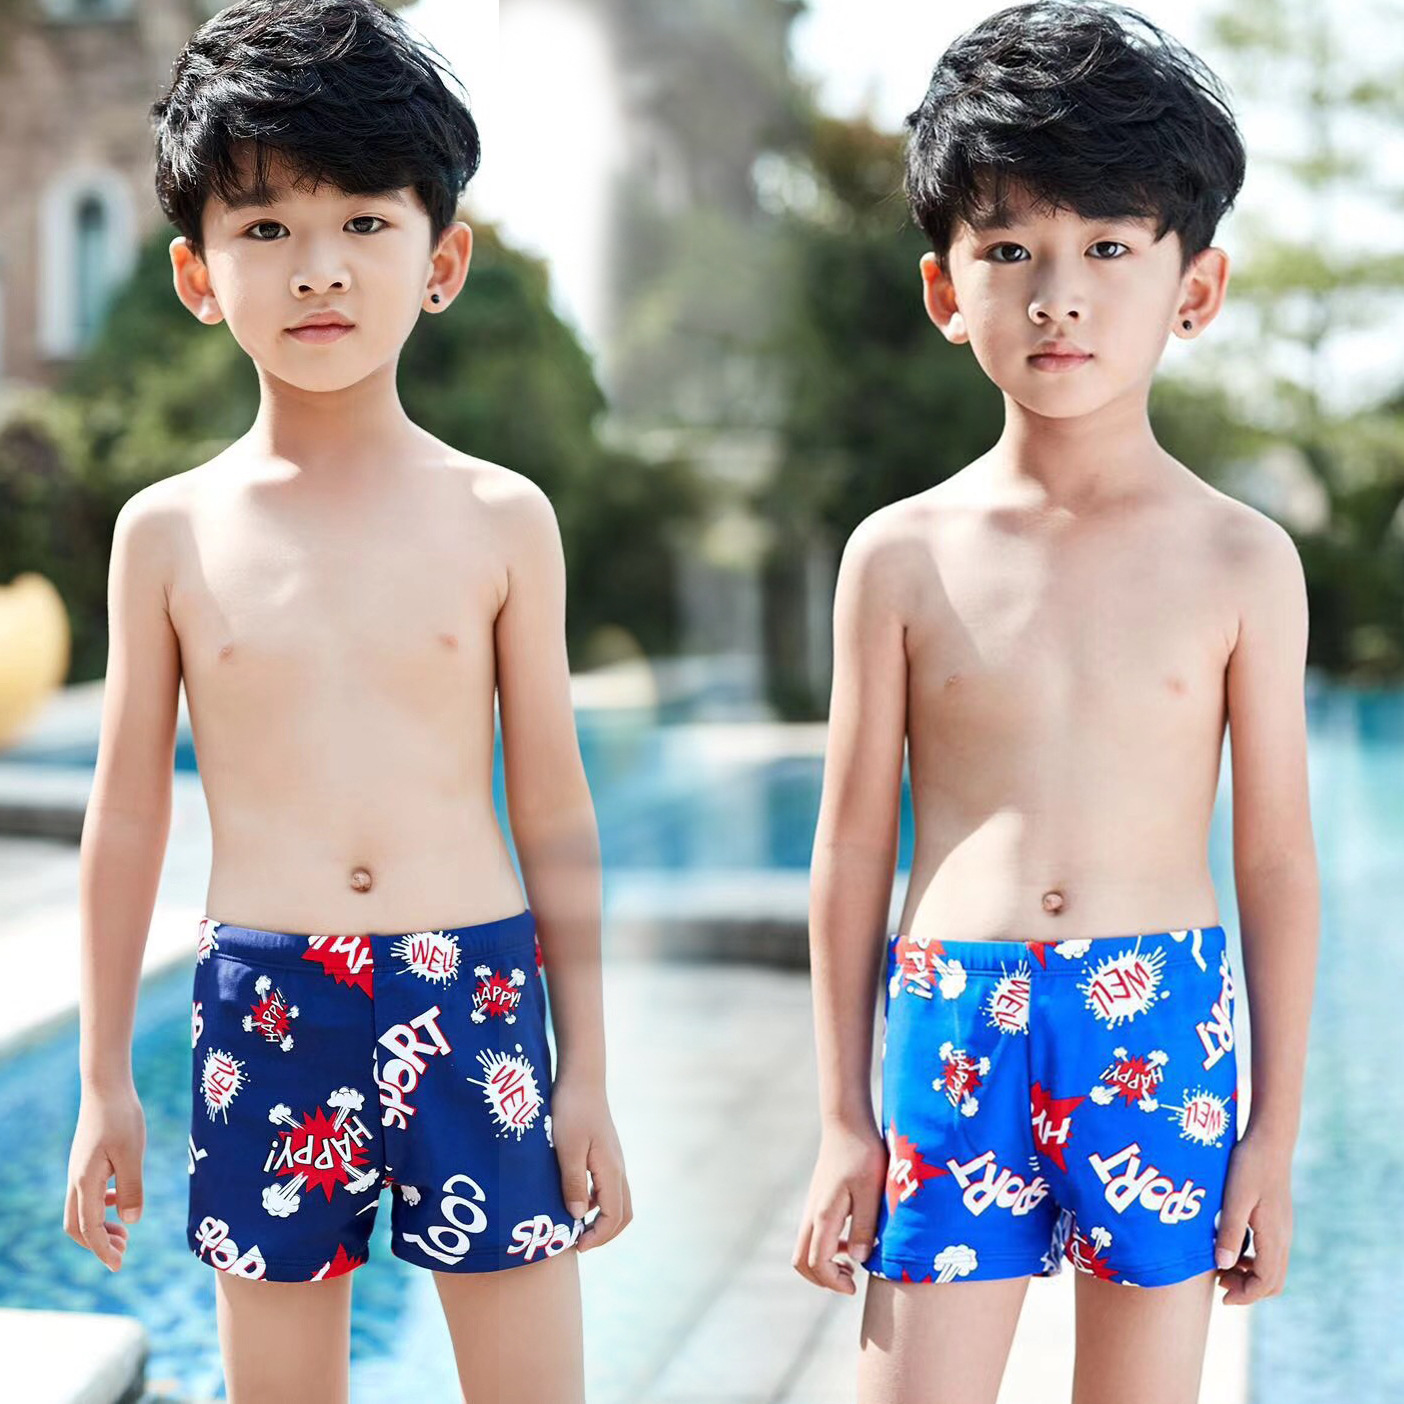 CHILDREN'S Swimming Trunks 10-13-Year-Old South Korea Men's Small CHILDREN'S Swimming Trunks Children Boxers 8802